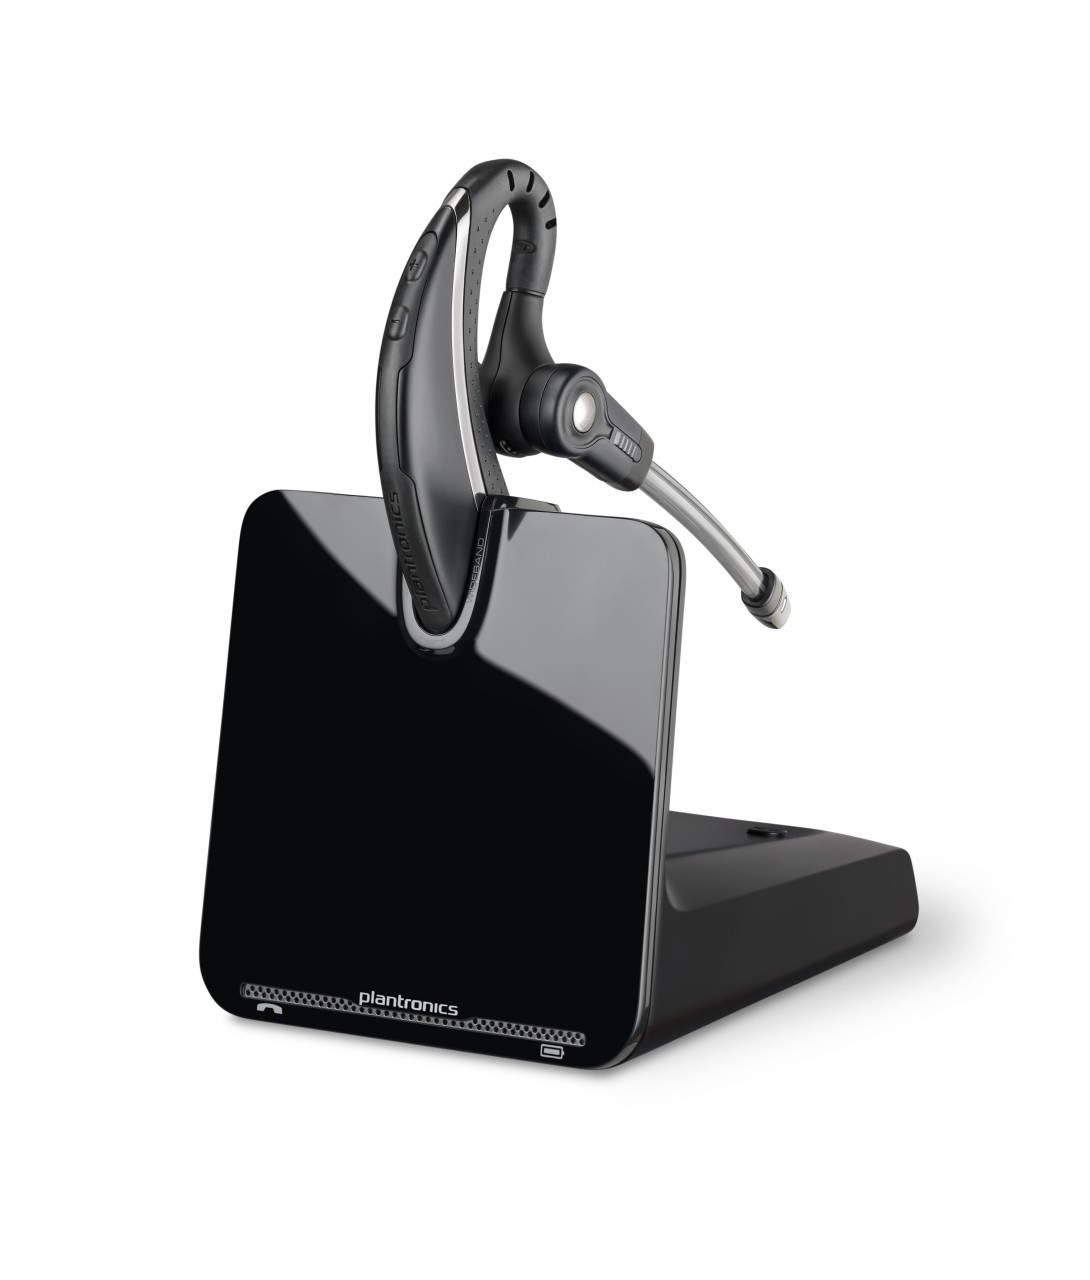 plantronics cs540 wireless headset manual open source user manual u2022 rh dramatic varieties com Plantronics Bluetooth Directions Plantronics Bluetooth Directions